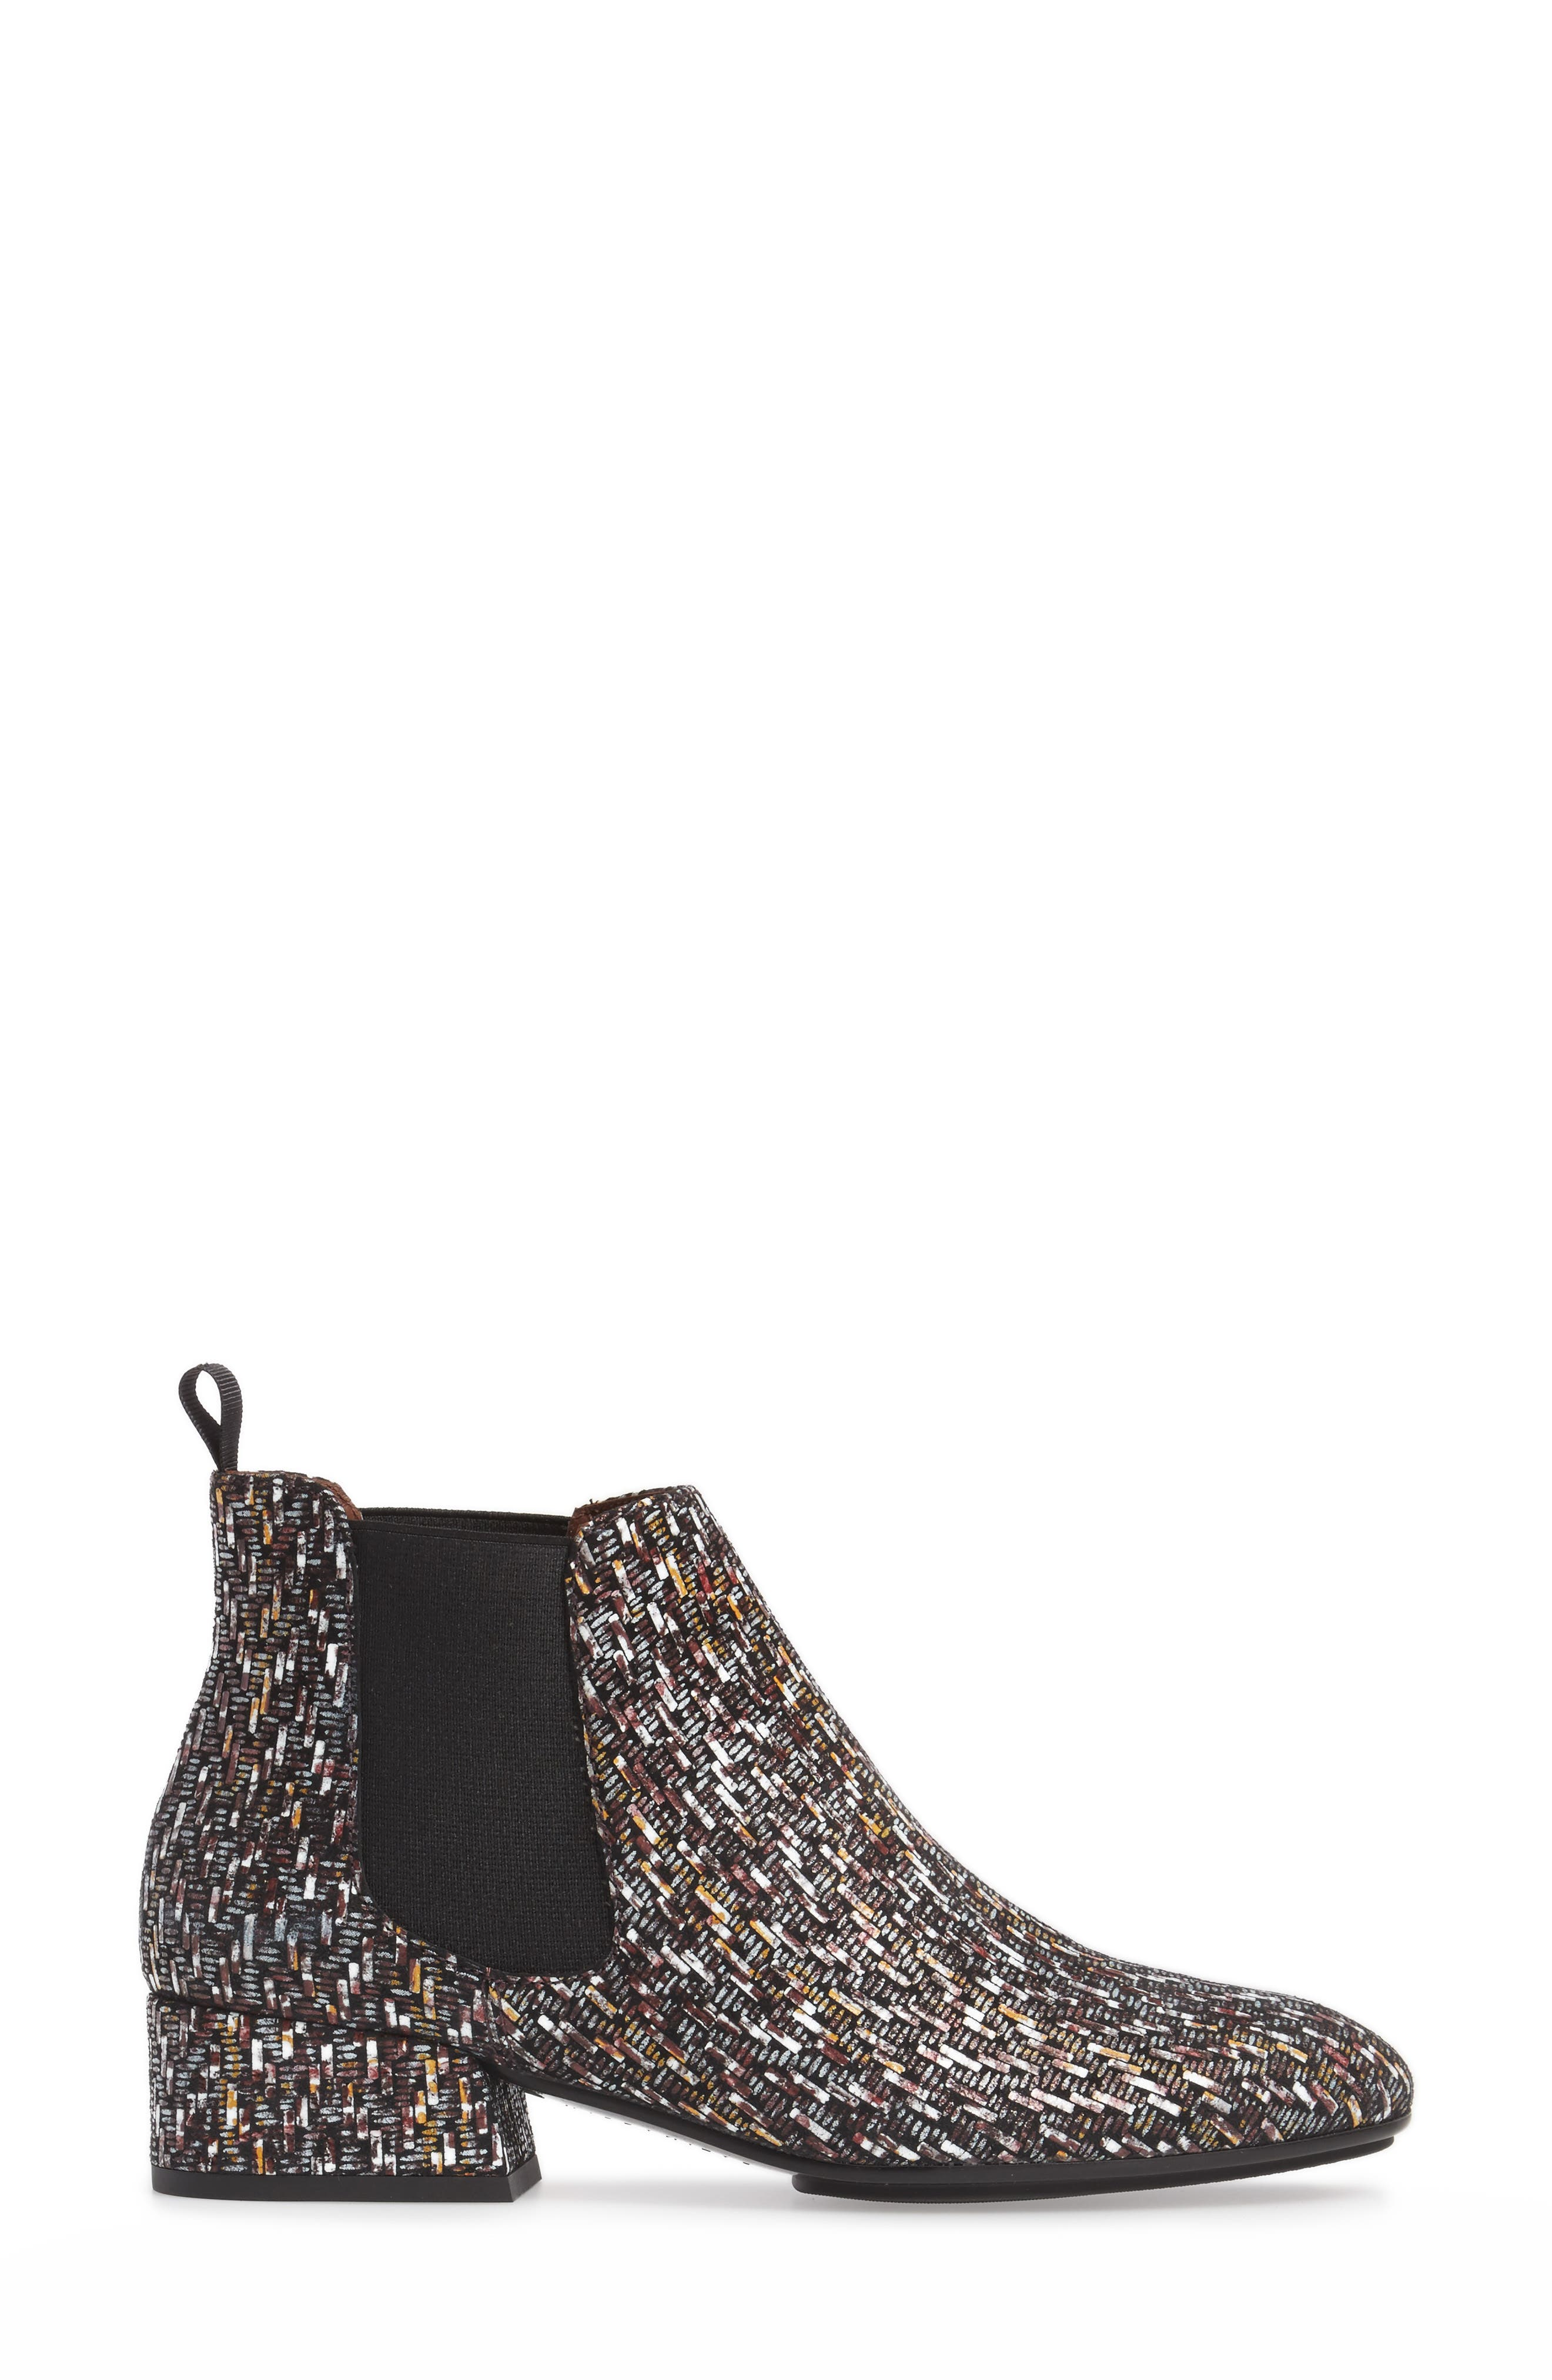 Ellys Patterned Chelsea Bootie,                             Alternate thumbnail 3, color,                             Bordo Leather